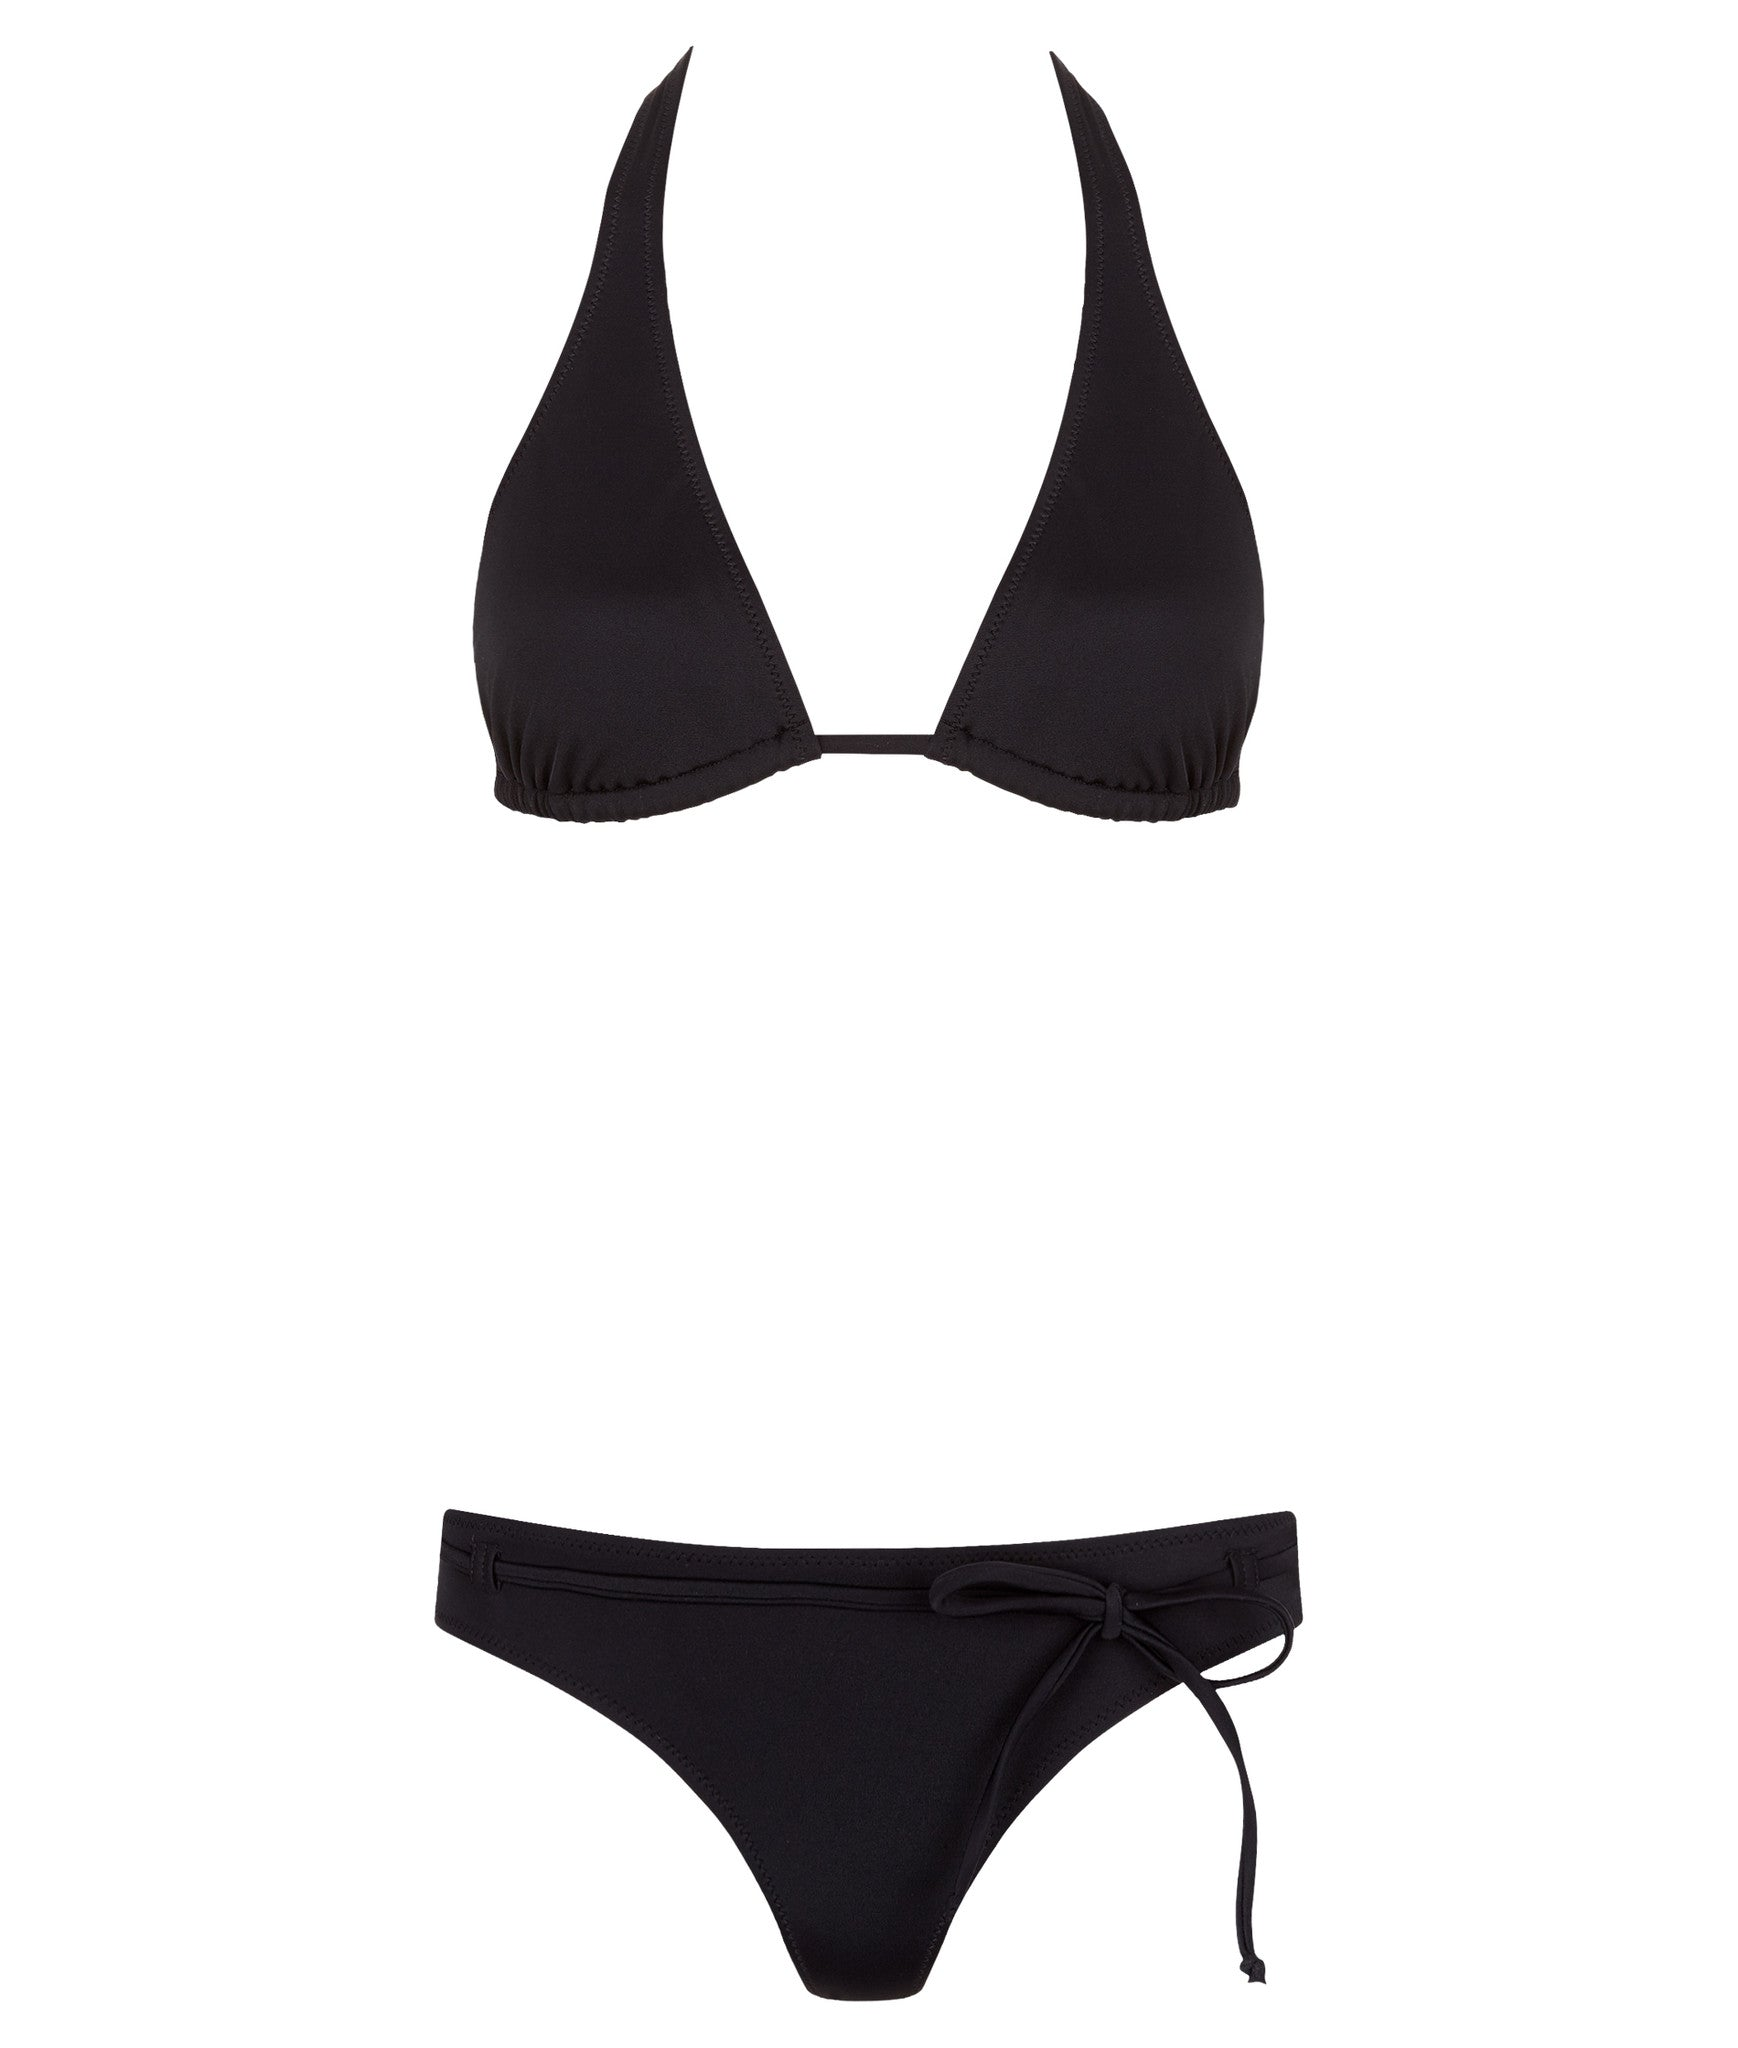 L'Agent by Agent Provocateur Honore Bikini Bottom - Knickers & Pearls Boutique - 1